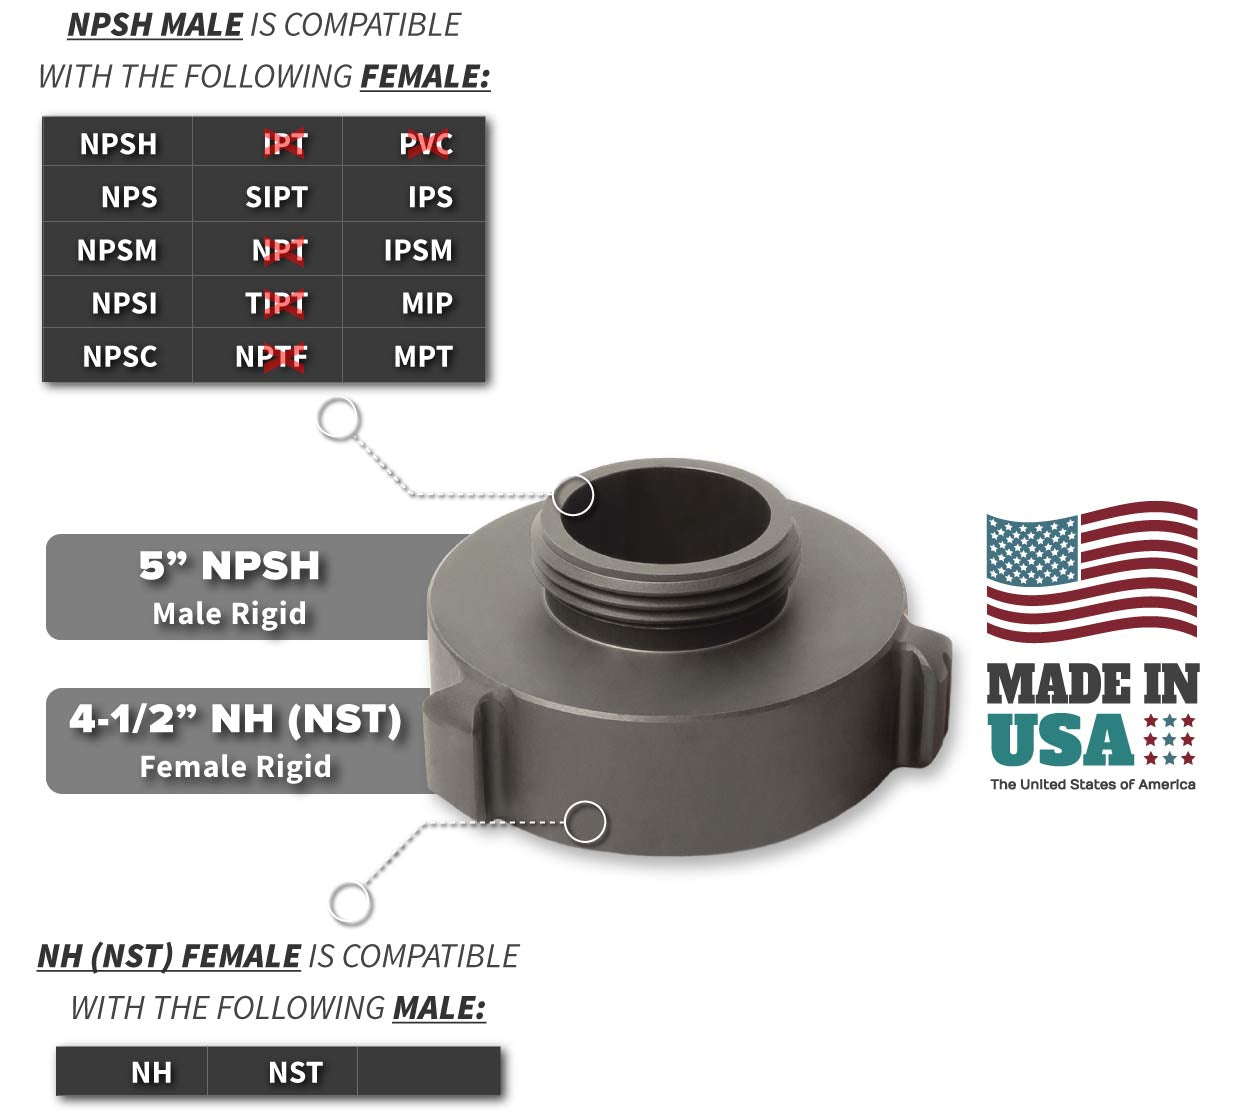 4.5 Inch NH-NST Female x 5 Inch NPSH Male Compatibility Thread Chart